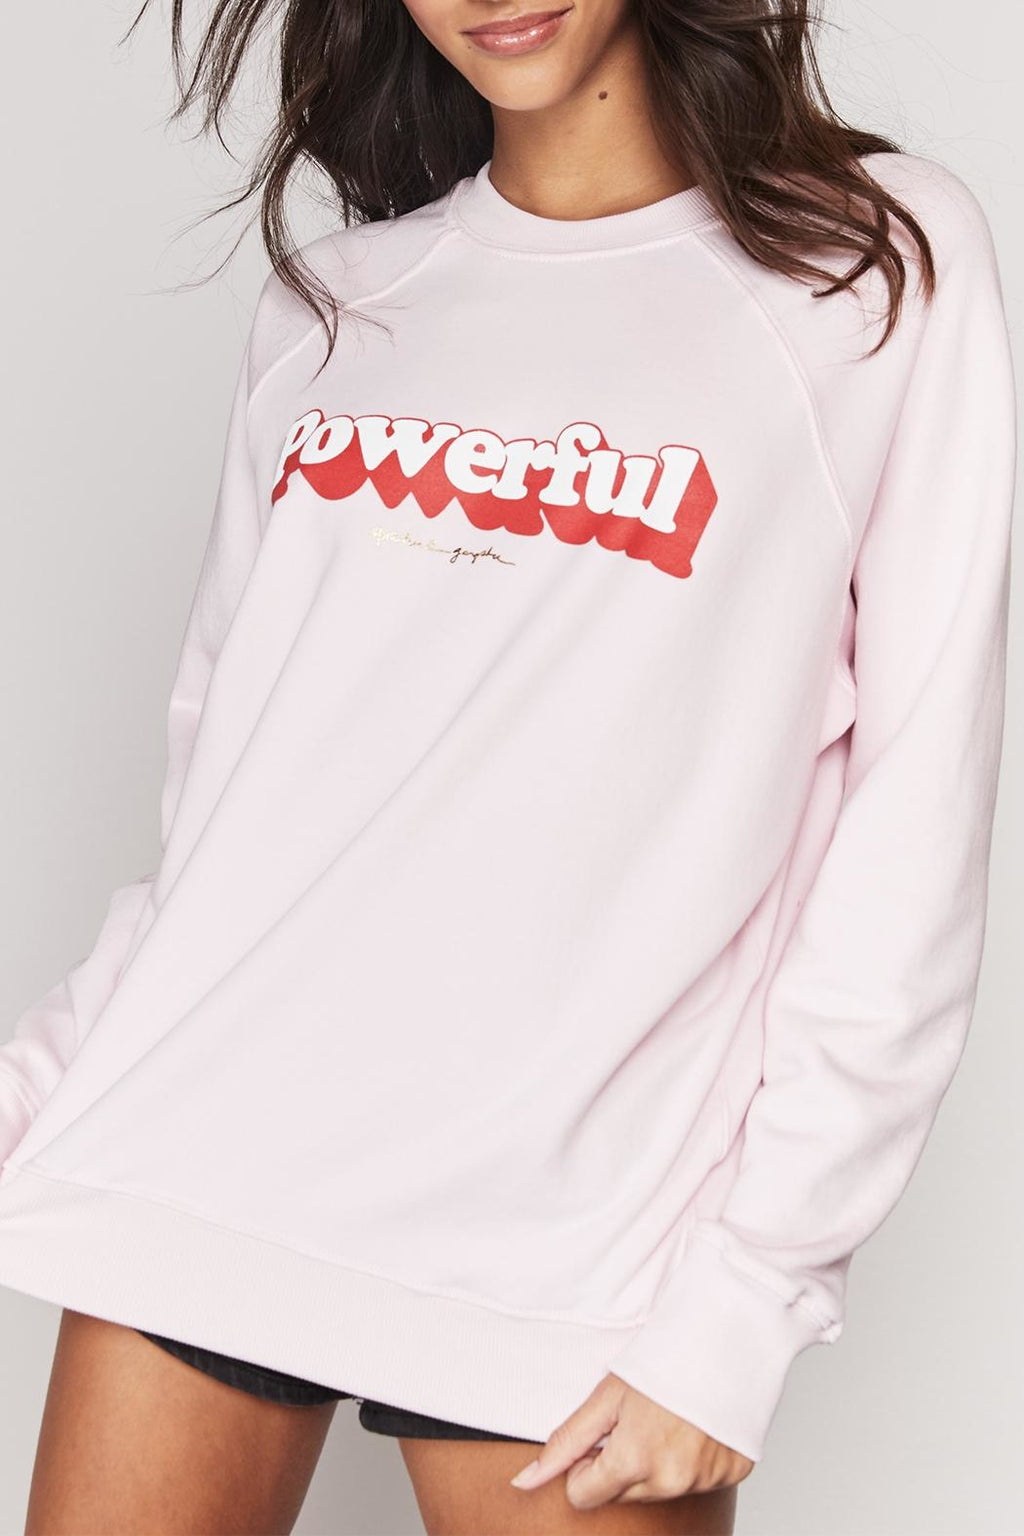 Powerful - Sweatshirt